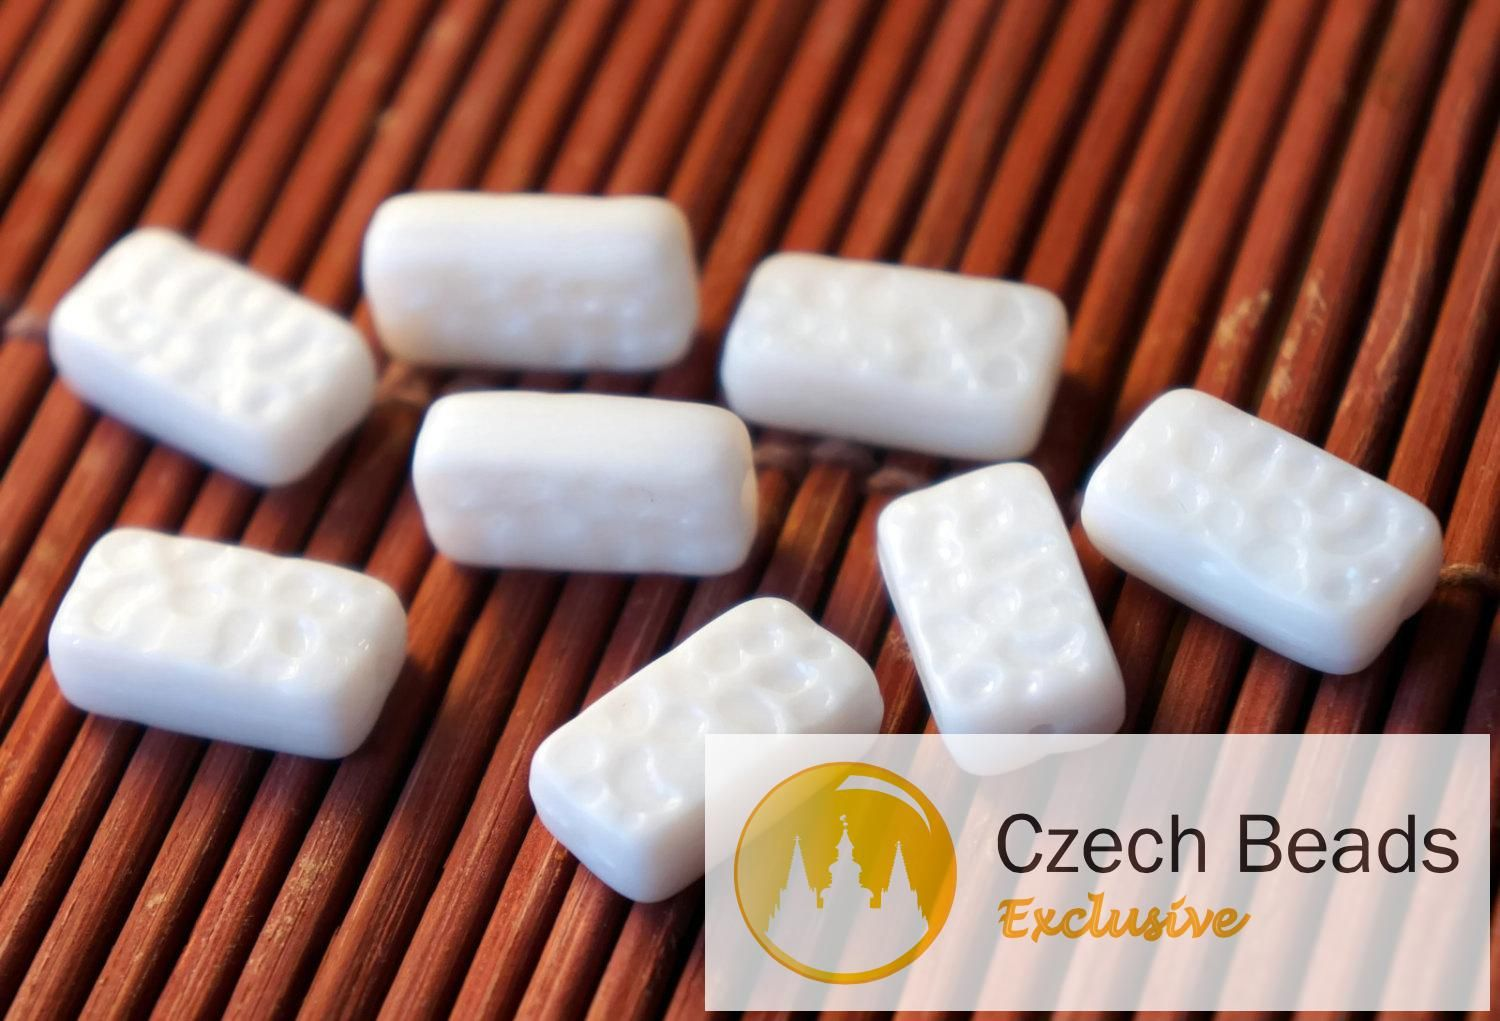 ✔ What's Hot Today: White Czech Glass Brick Rectangle Beads Czech Glass Beads Bohemian Beads Wedding Beads Original Exclusive Authentic 15mm x 8mm 12pc https://czechbeadsexclusive.com/product/white-czech-glass-brick-rectangle-beads-czech-glass-beads-bohemian-beads-wedding-beads-original-exclusive-authentic-15mm-x-8mm-12pc/?utm_source=PN&utm_medium=czechbeads&utm_campaign=SNAP #CzechBeadsExclusive #czechbeads #glassbeads #bead #beaded #beading #beadedjewelry #handmade